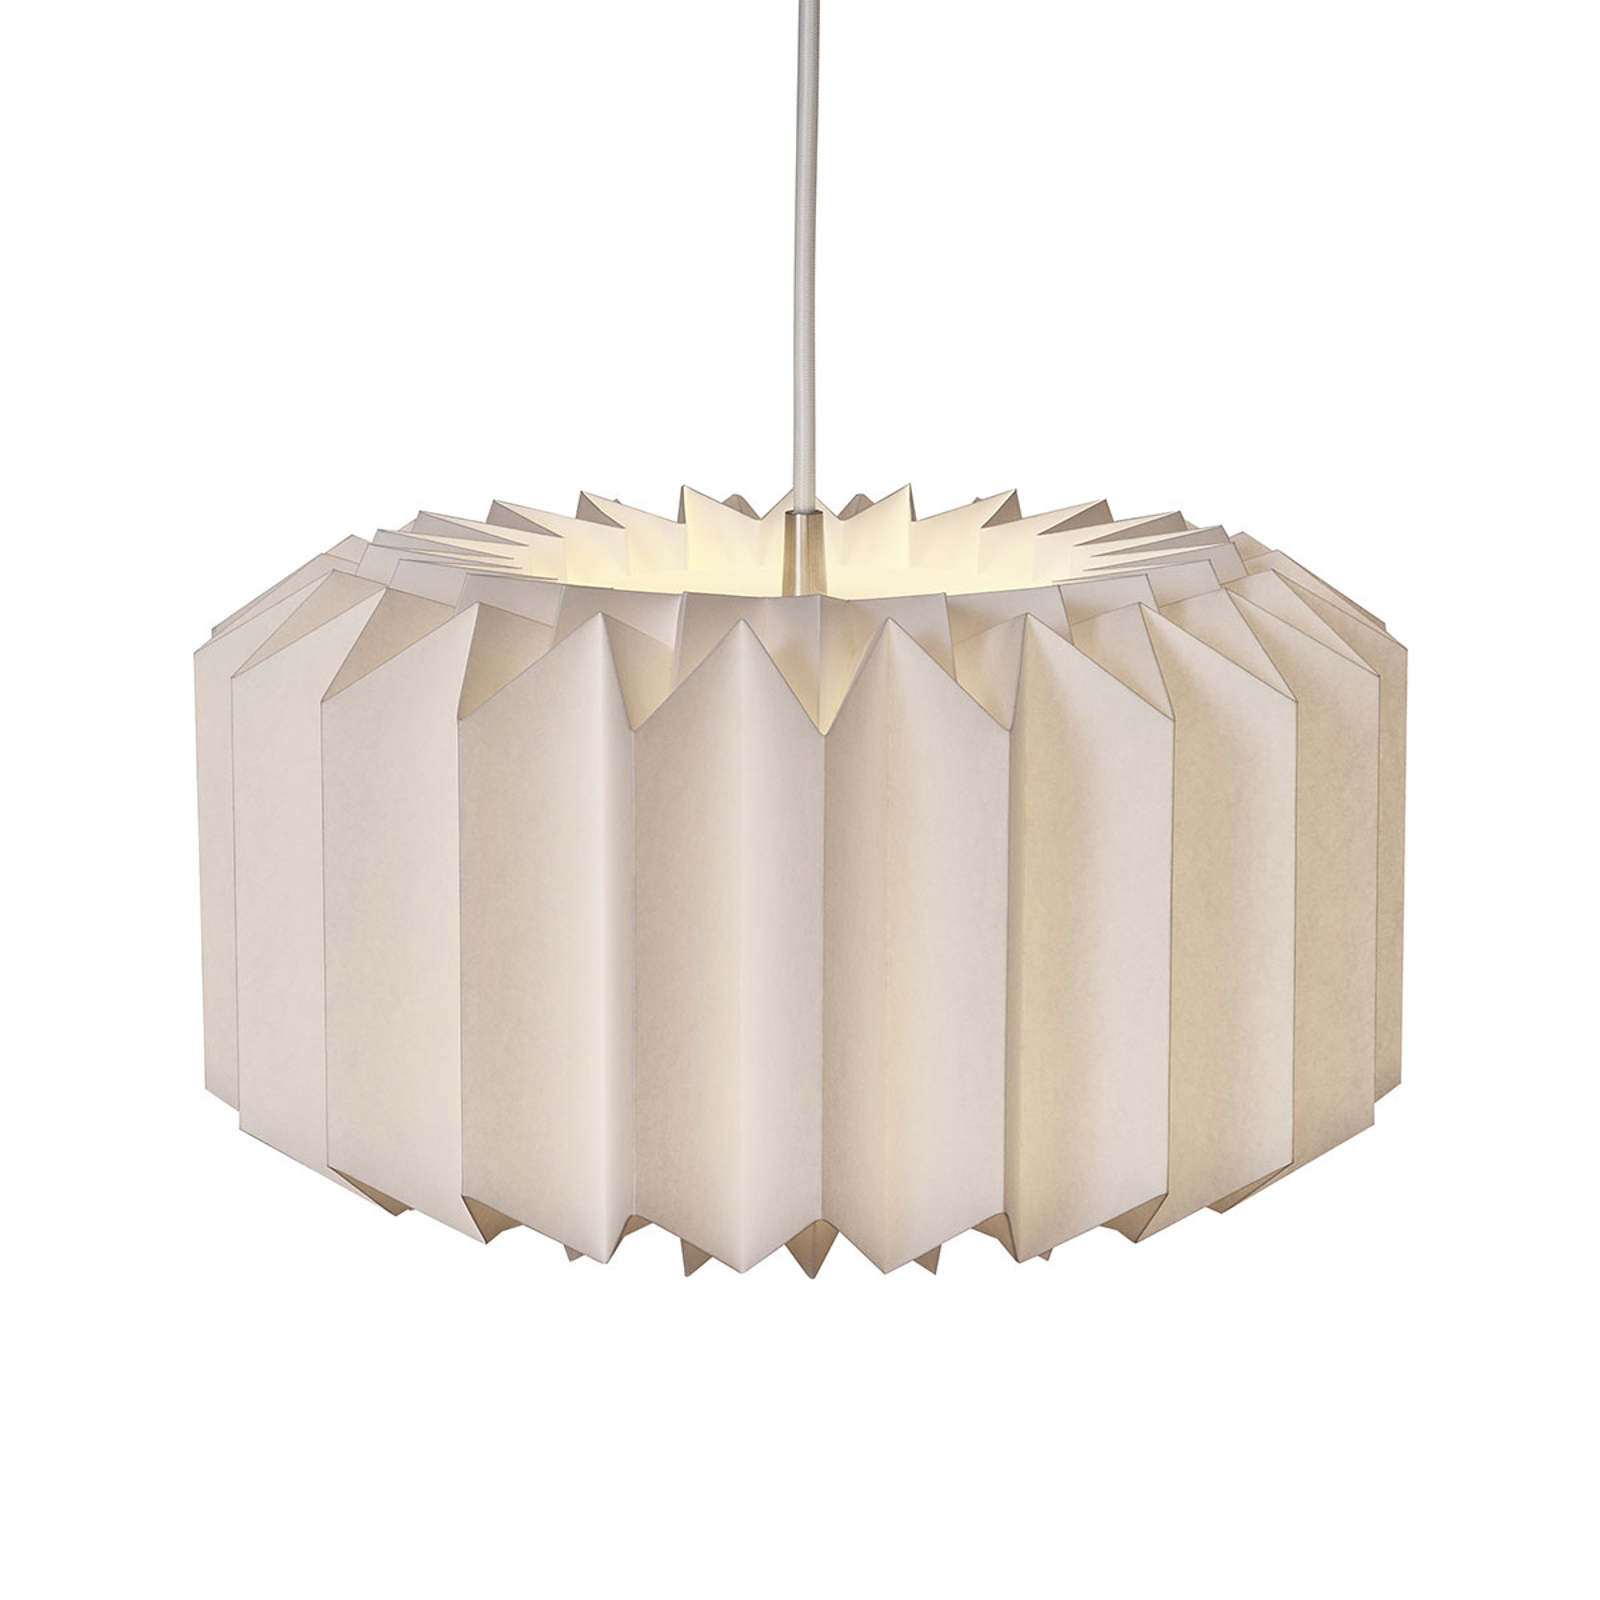 LE KLINT Onefivefour hanglamp in Wit, medium